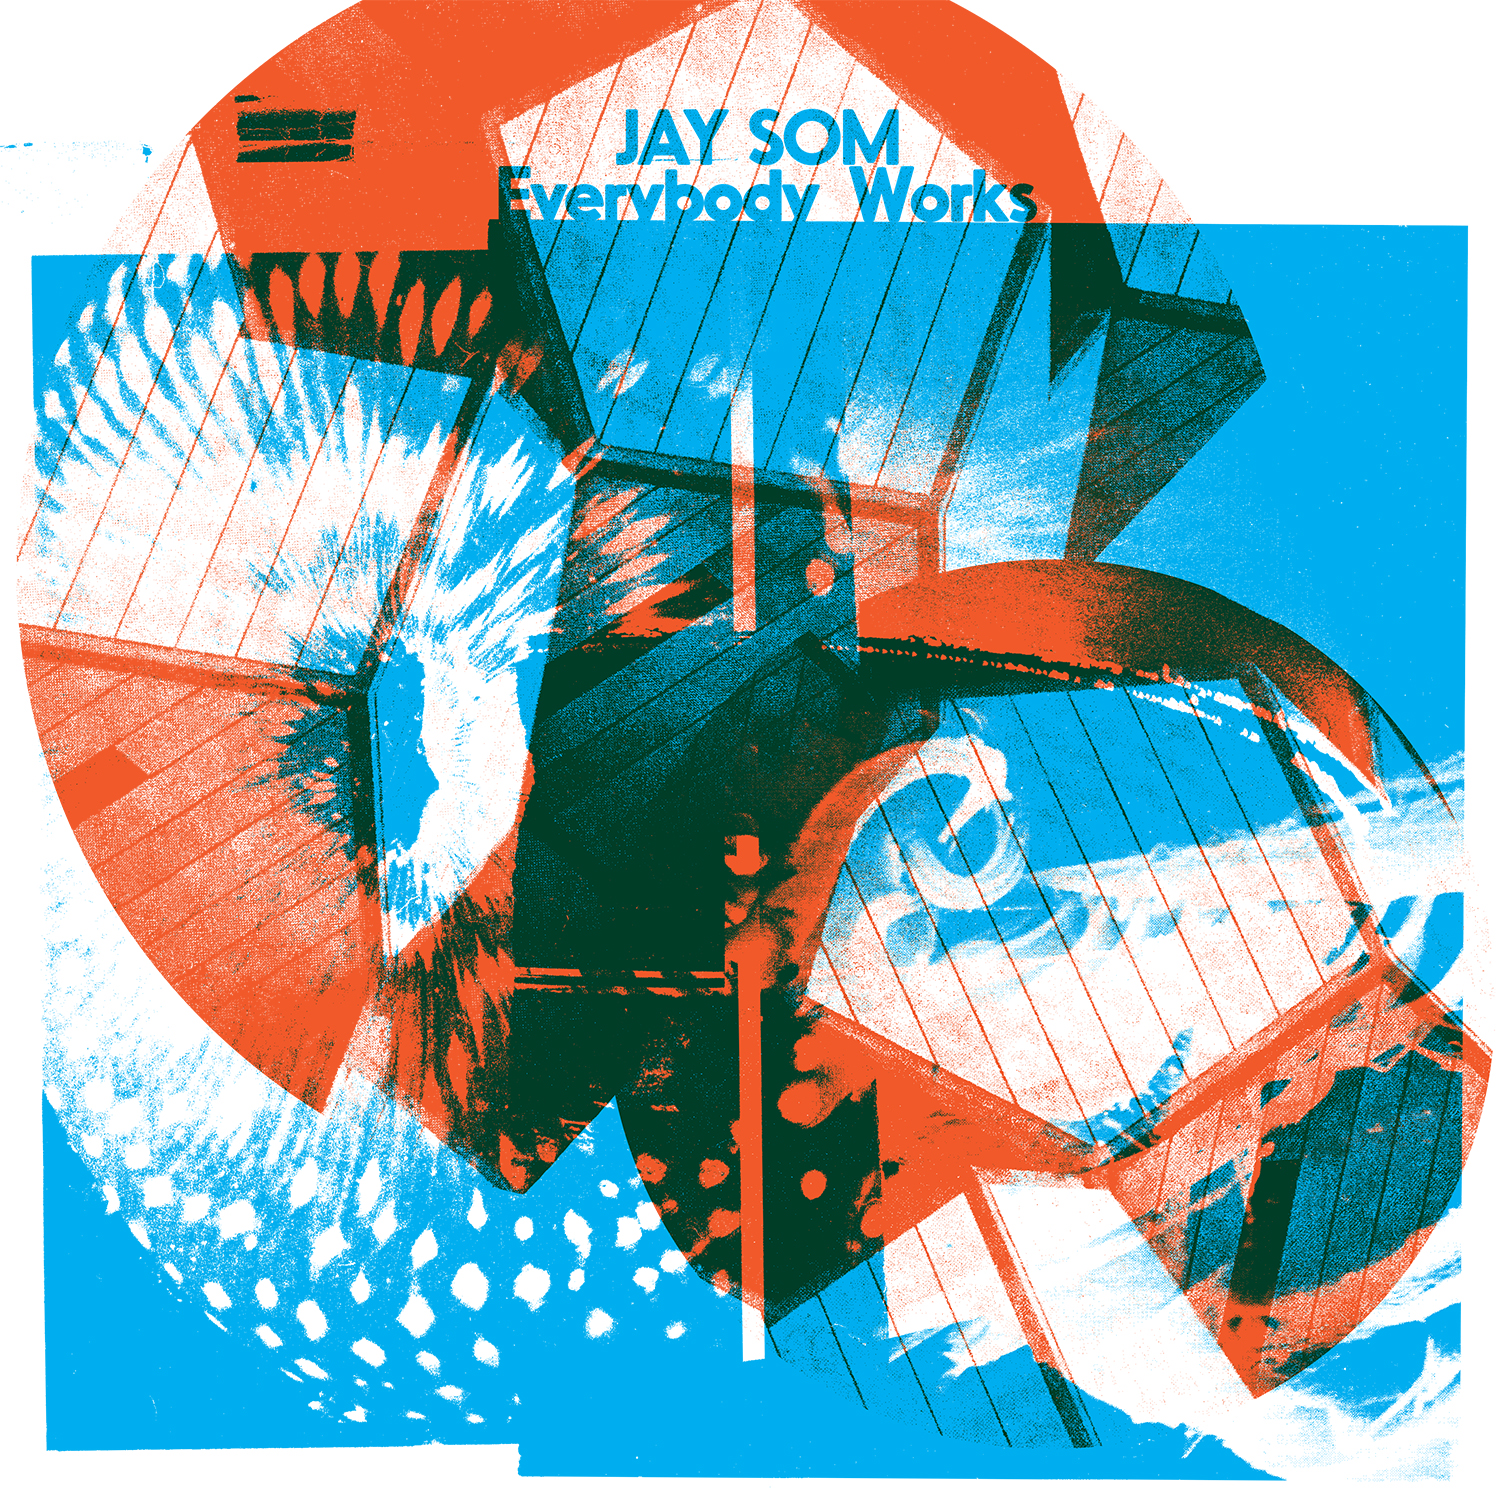 Jay Som Everybody Works Album art.jpg